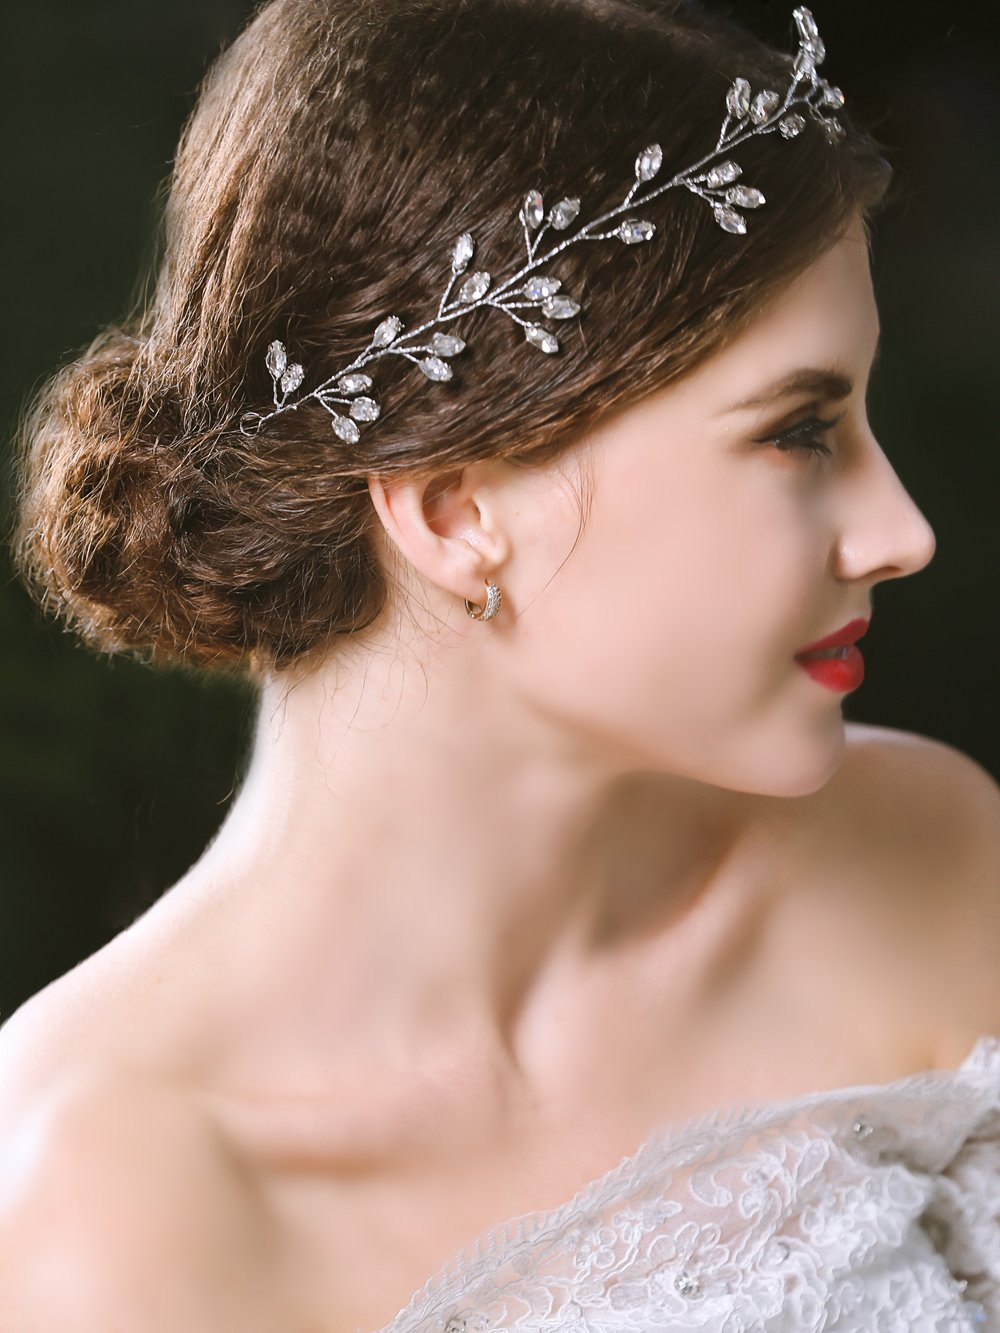 Amazon.com : Yean Wedding Bridal Headband for for Women and Girls ...